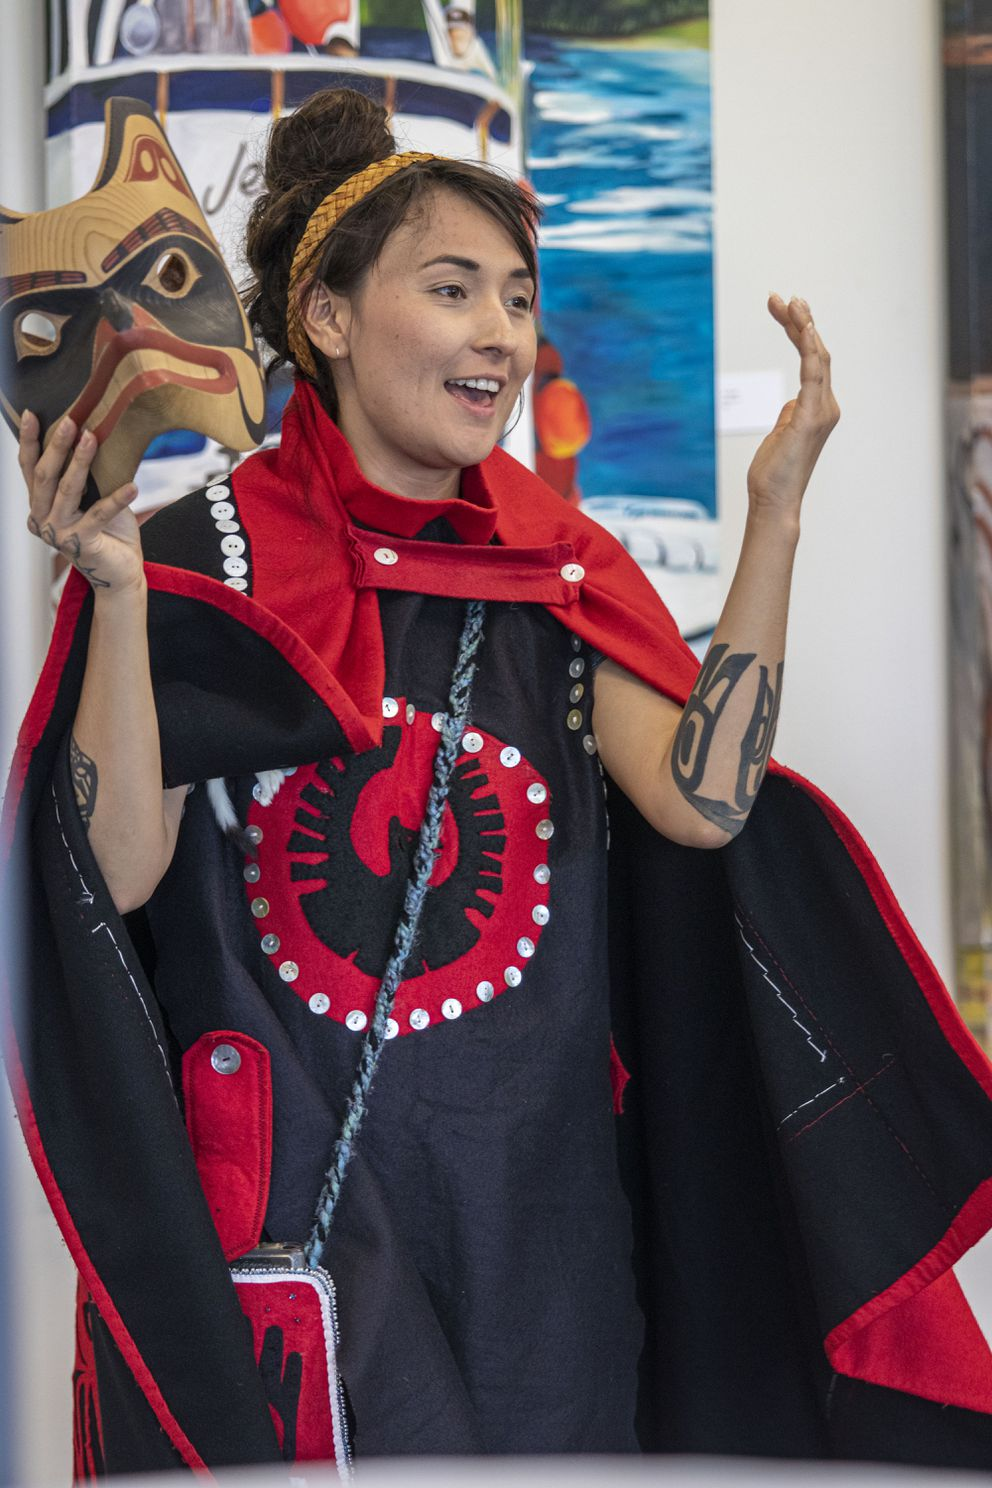 Alumni and Native Dancers mingle during the first Alumni Mixer in the Leah J Peterson gallery on the campus of APU. (Ted Kincaid/Alaska Pacific University)